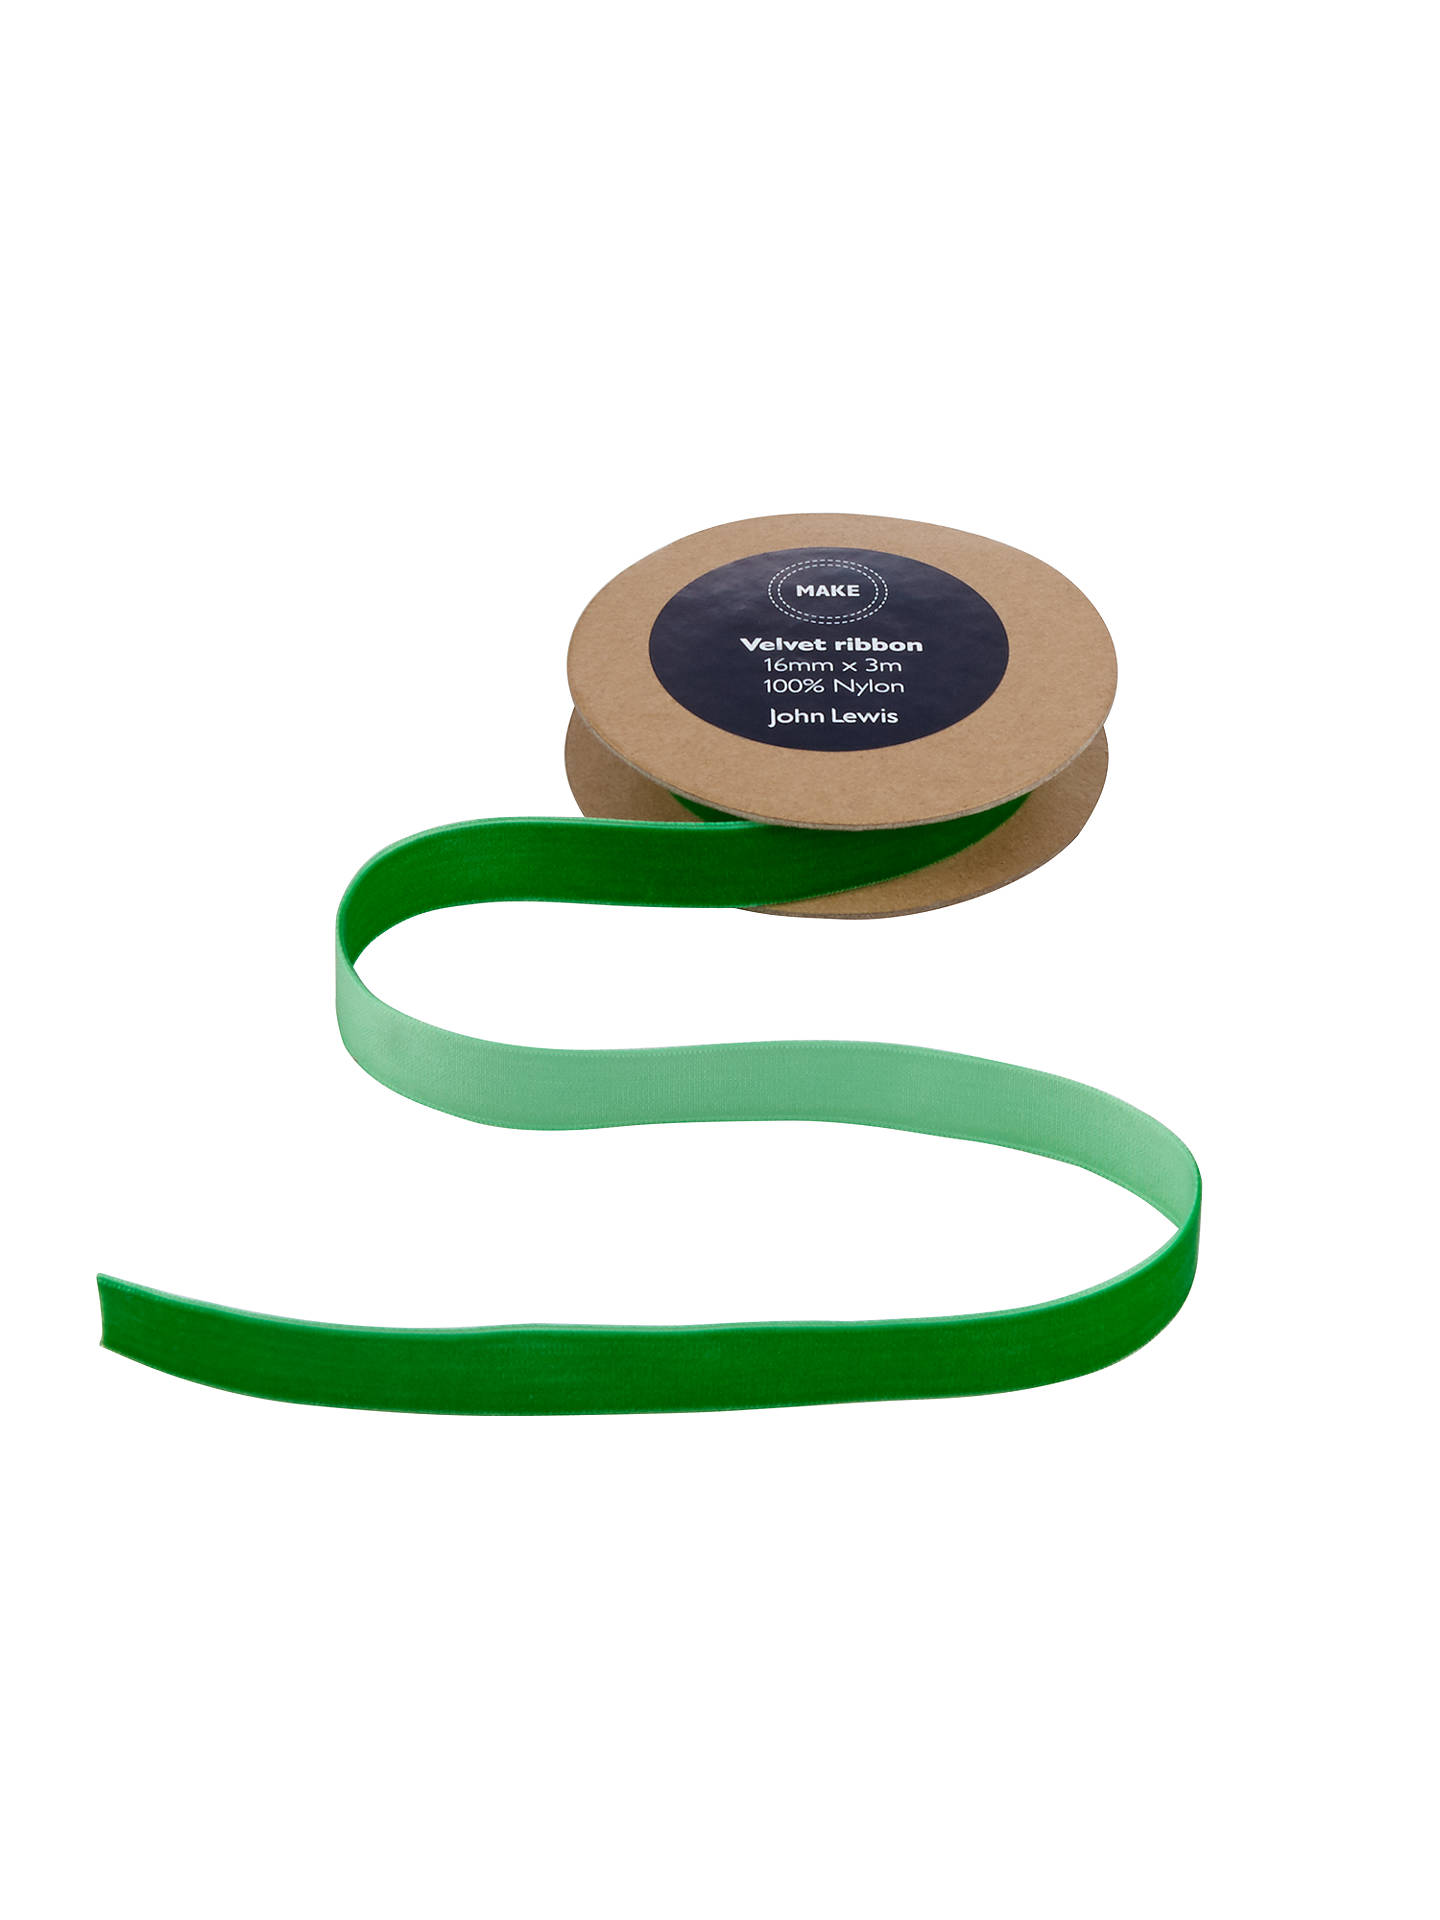 Emerald green velvet ribbon